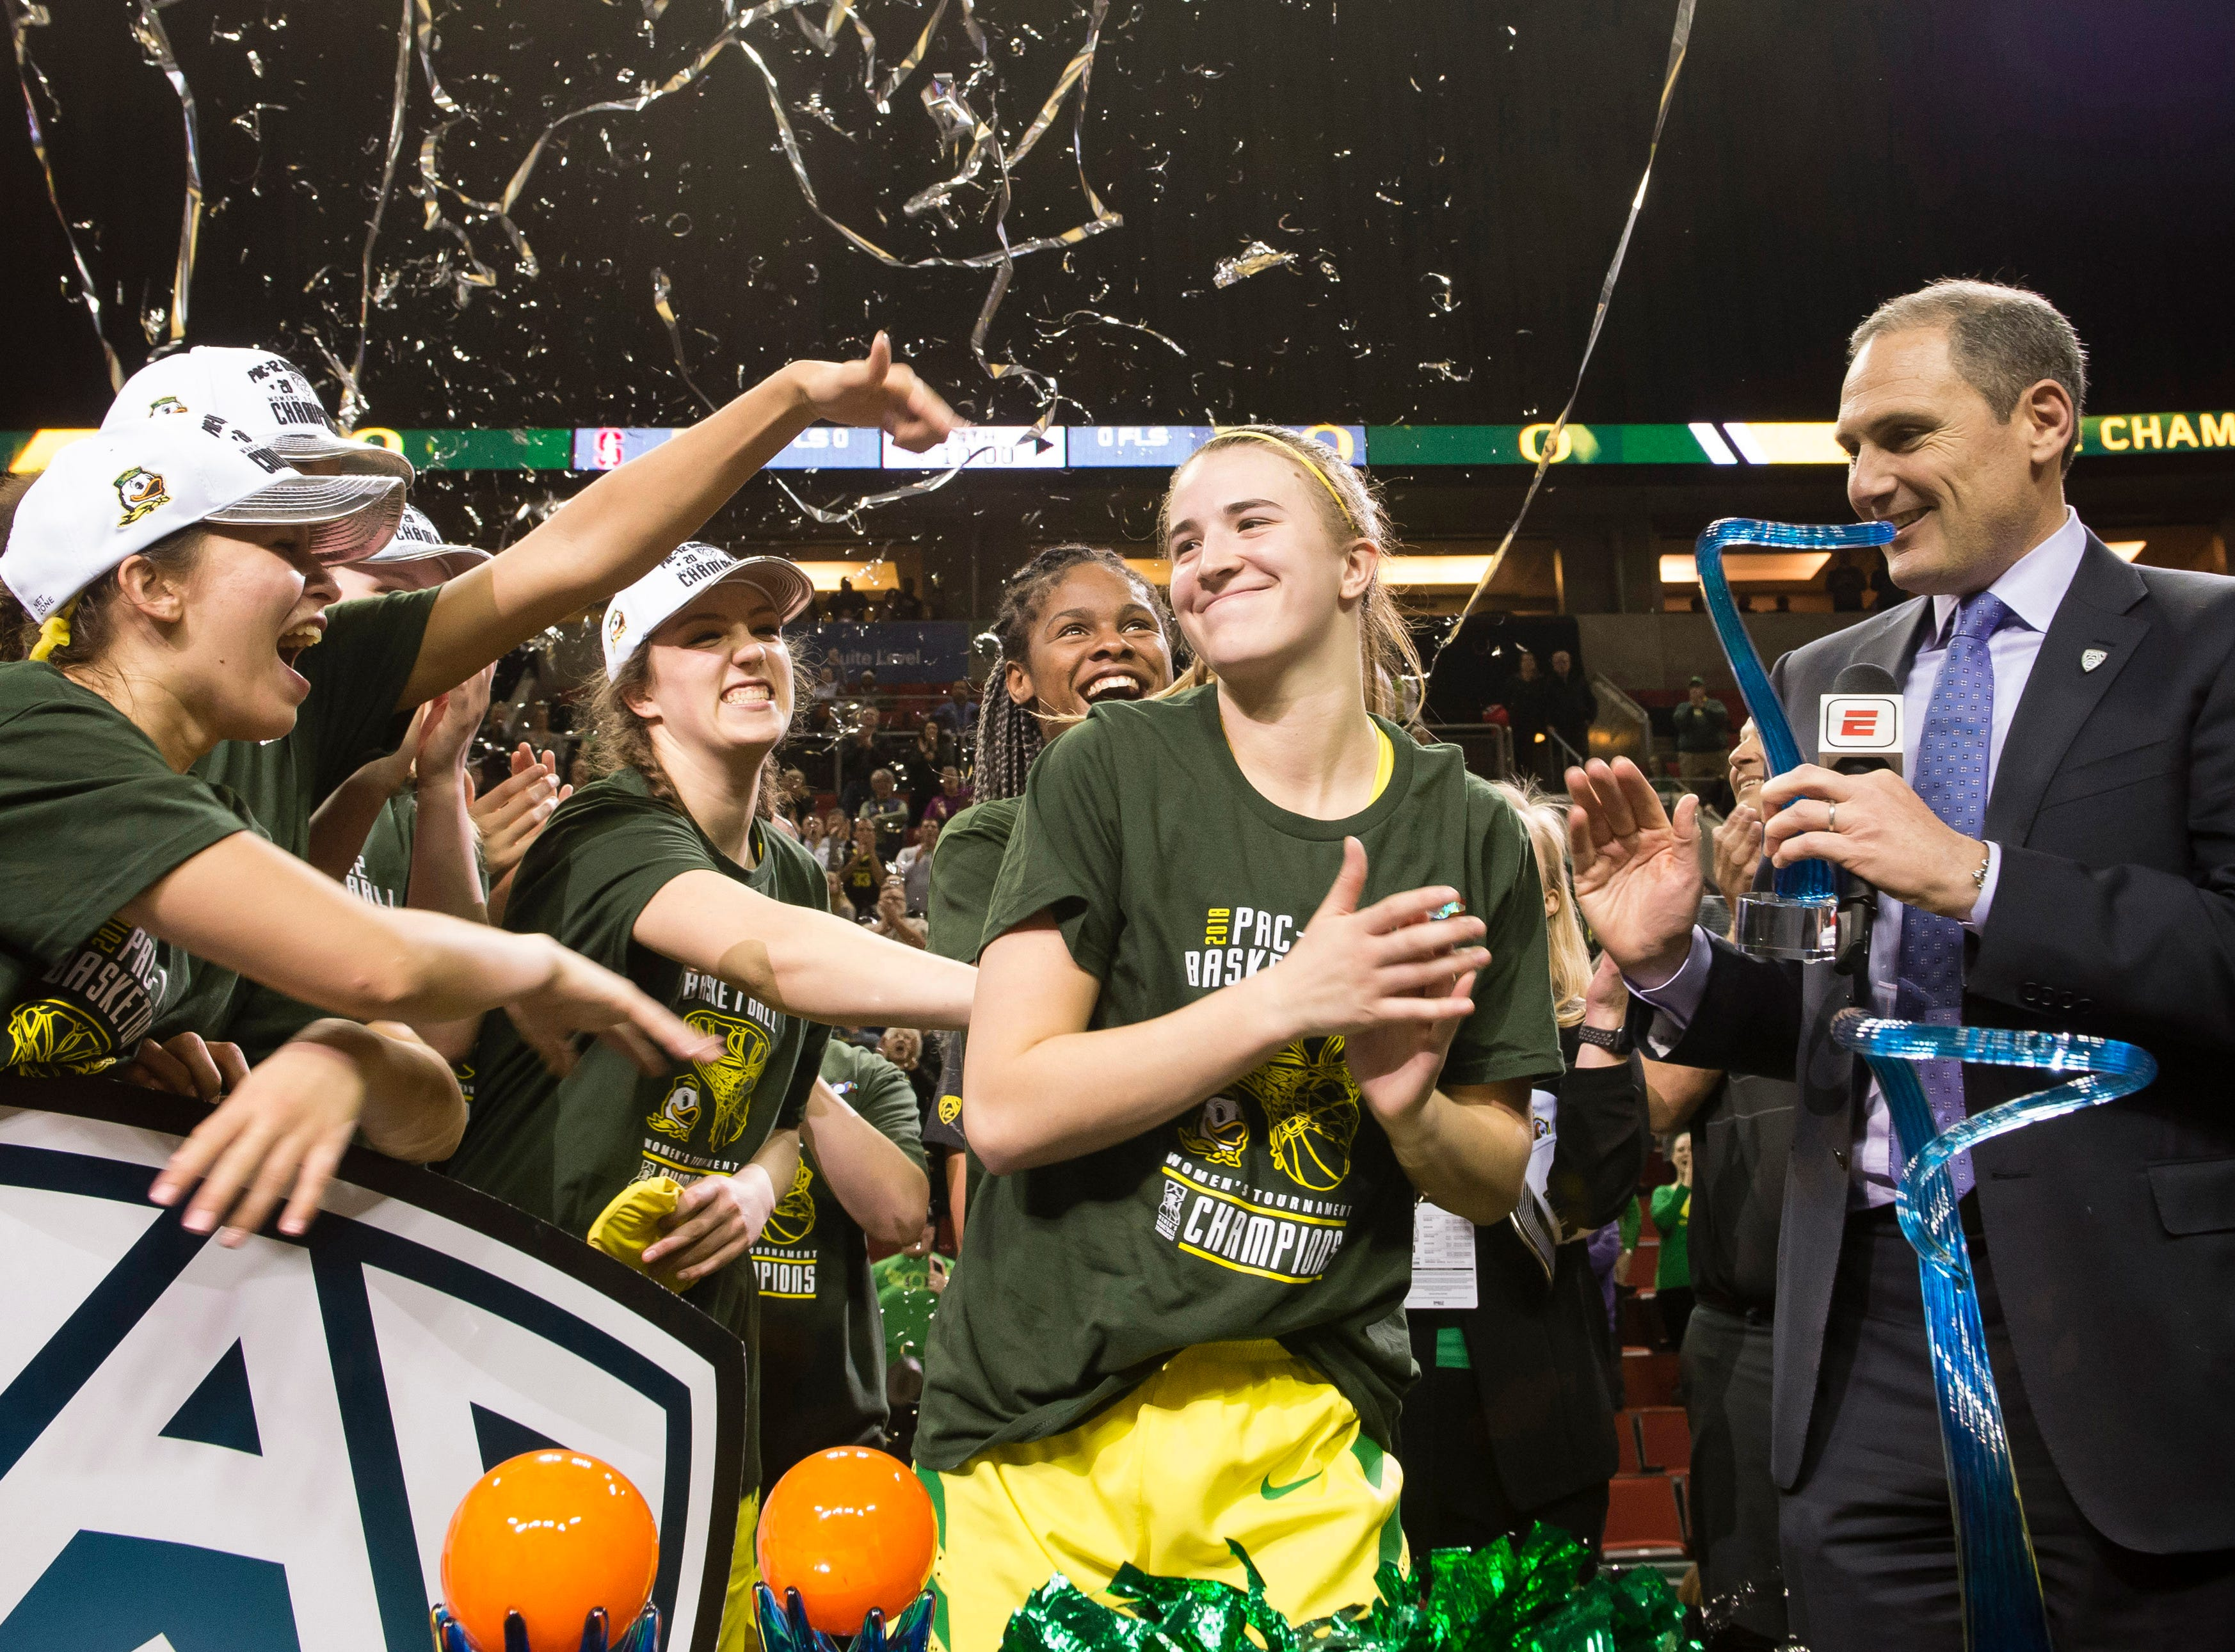 Mar 4, 2018; Seattle, WA, USA; Oregon Ducks guard Sabrina Ionescu (20) celebrates with teammates after receiving the Most Outstanding Player award during a celebration following a game against the Stanford Cardinal at the championship game at the Pac-12 Women's Basketball Tournament at KeyArena. The Ducks won 77-57. Mandatory Credit: Troy Wayrynen-USA TODAY Sports